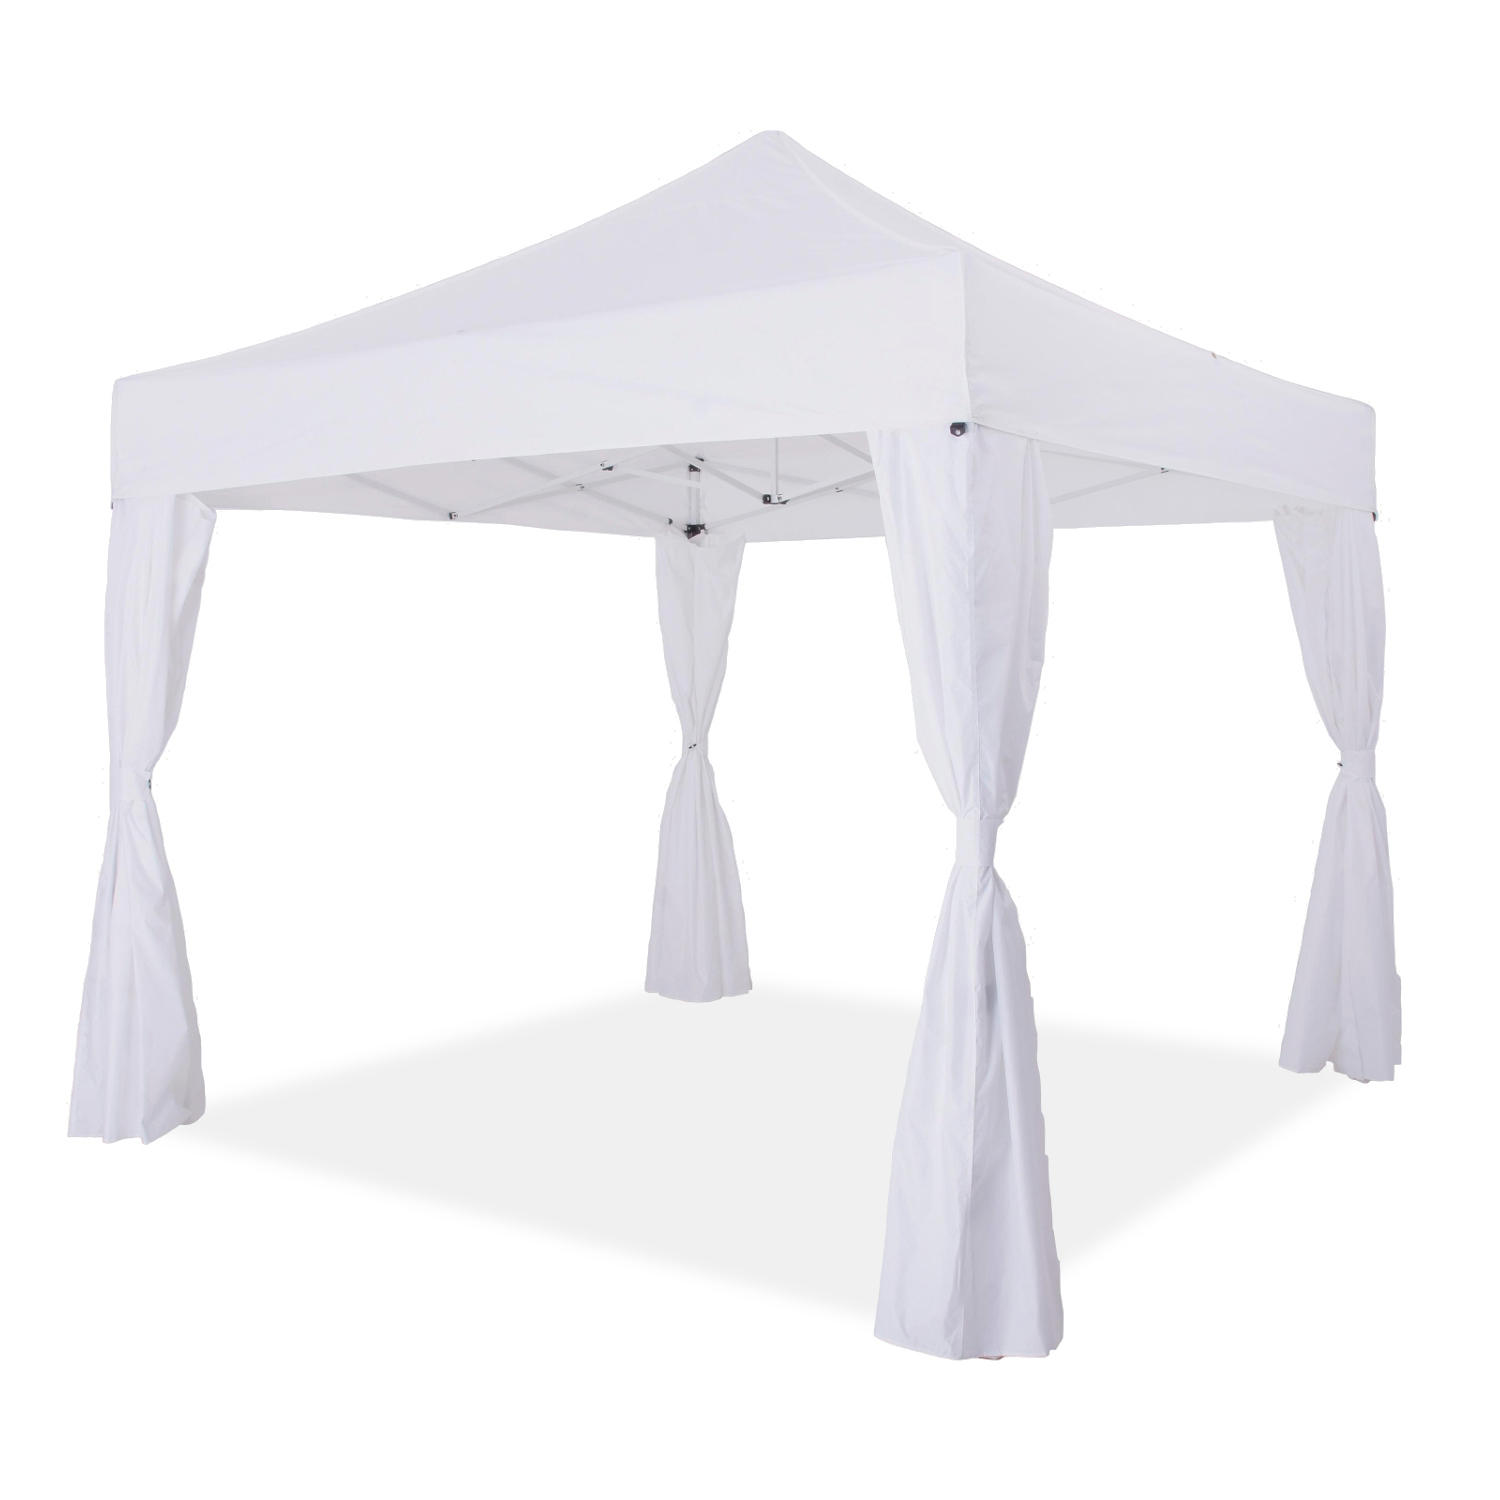 Member's Mark 10'x10′ Commercial Canopy